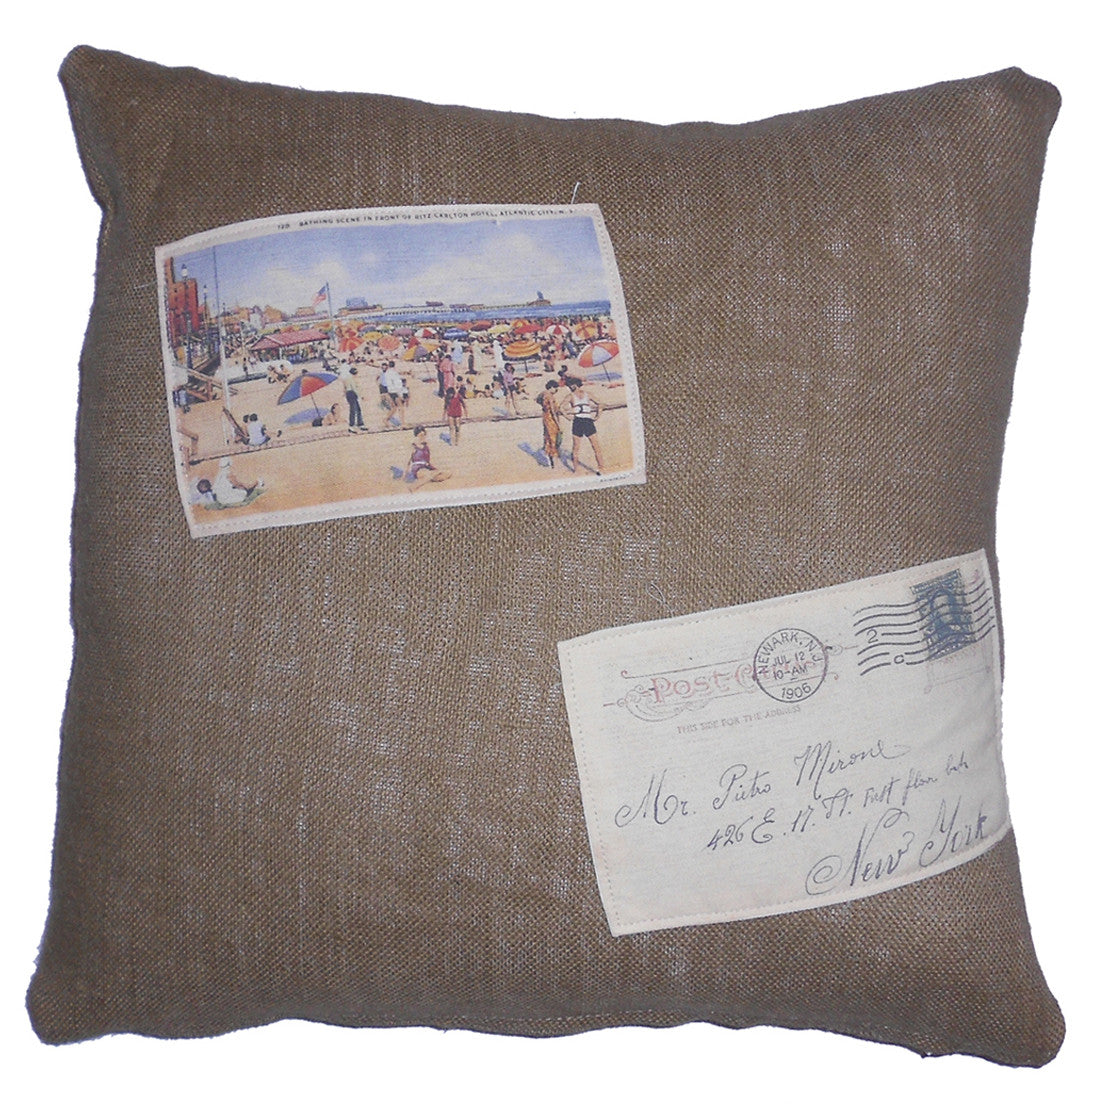 vintage beach pillow - 20 x 20 cover burlap with patches